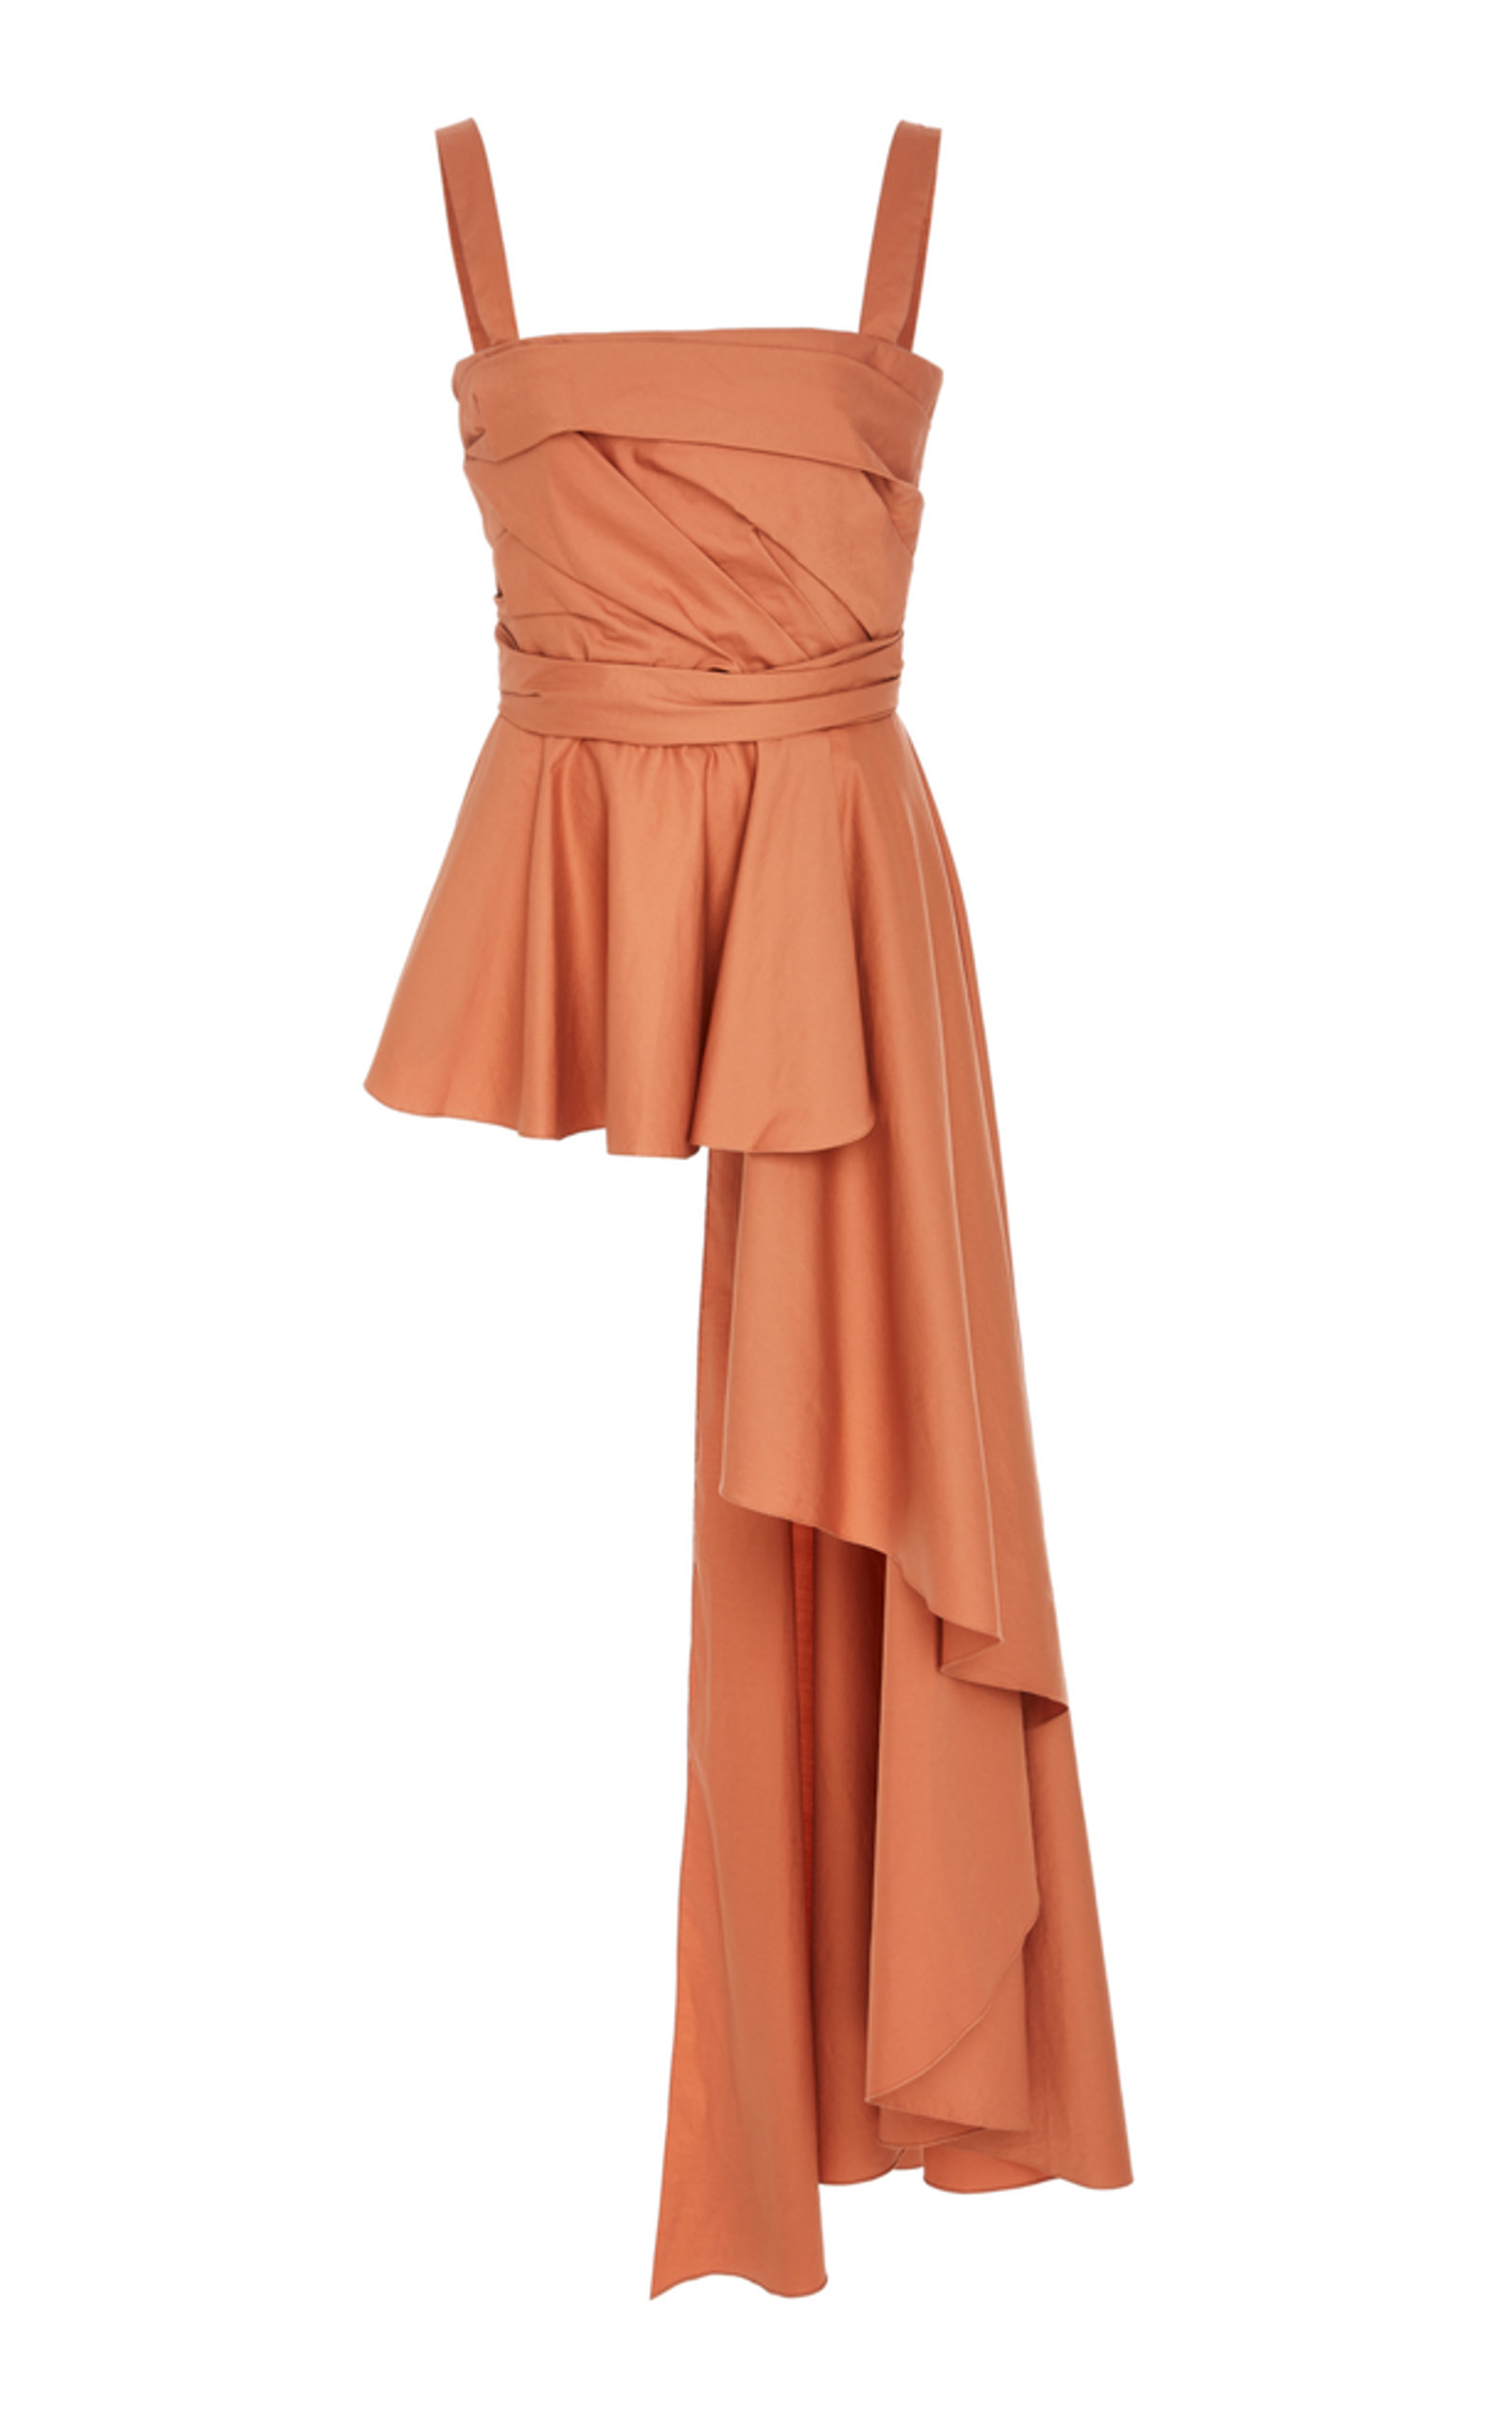 ba166fd26e6e83 Johanna Ortiz Bulerias Sleeveless Square-Neck Side-Draped Peplum Blouse In  Orange